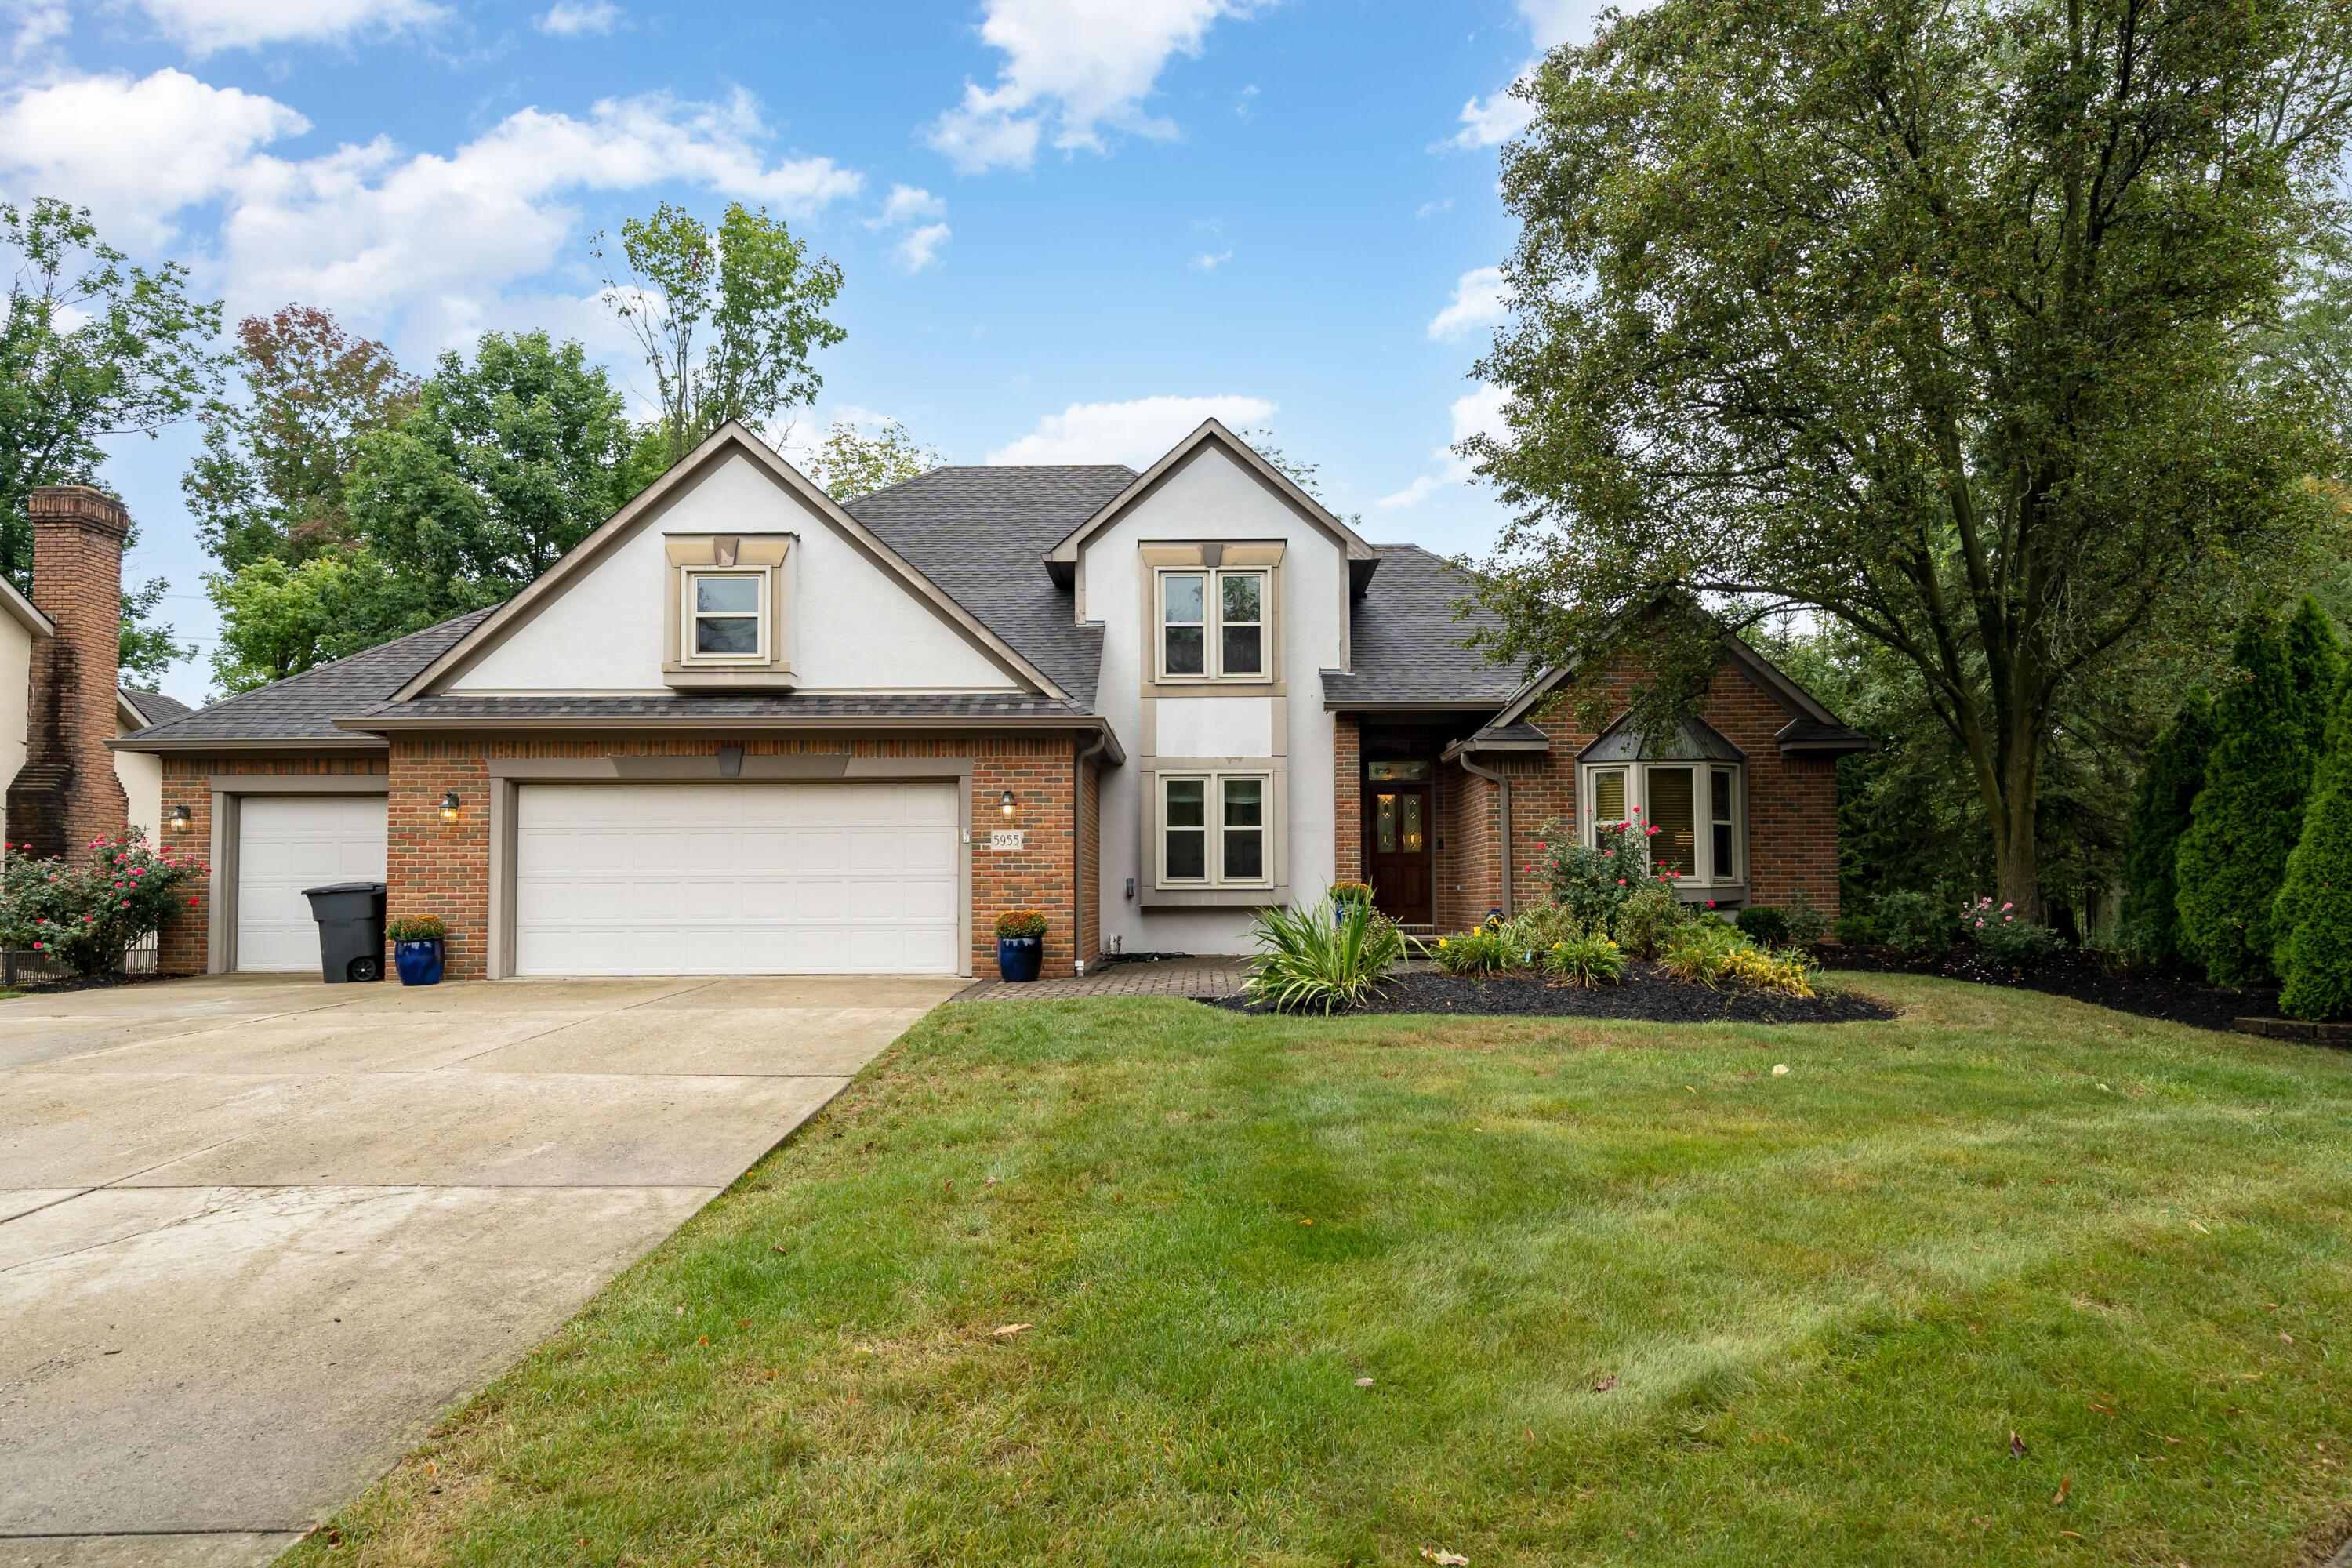 Photo of 5955 Grant Run Place, Grove City, OH 43123